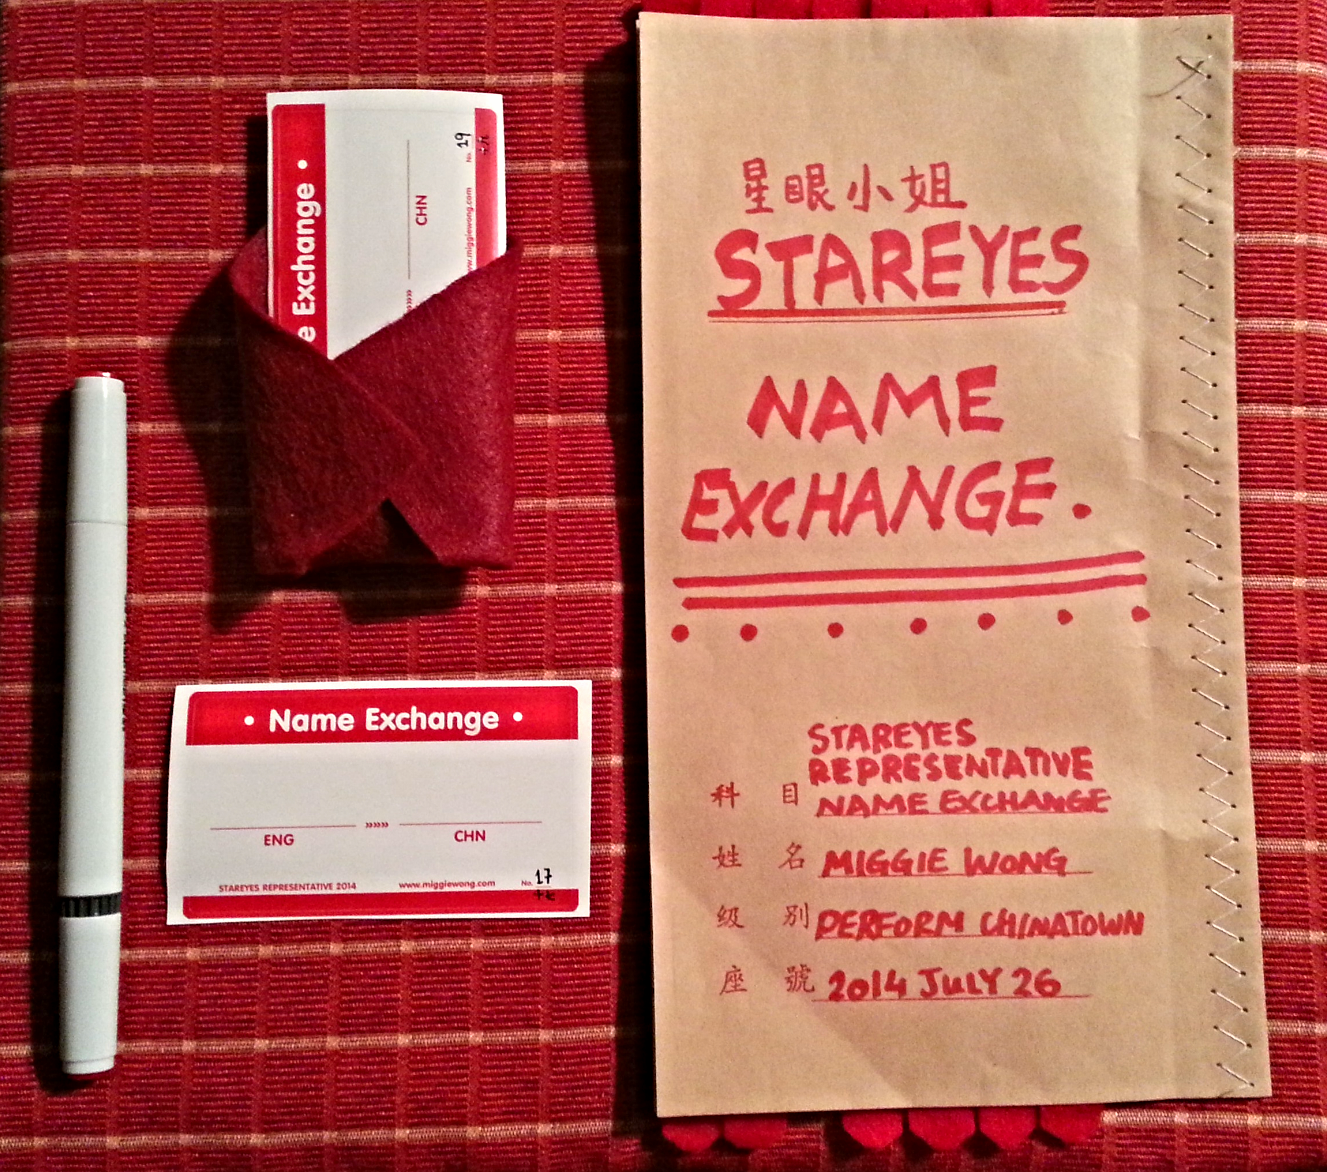 StarEyes Name Exchange Service